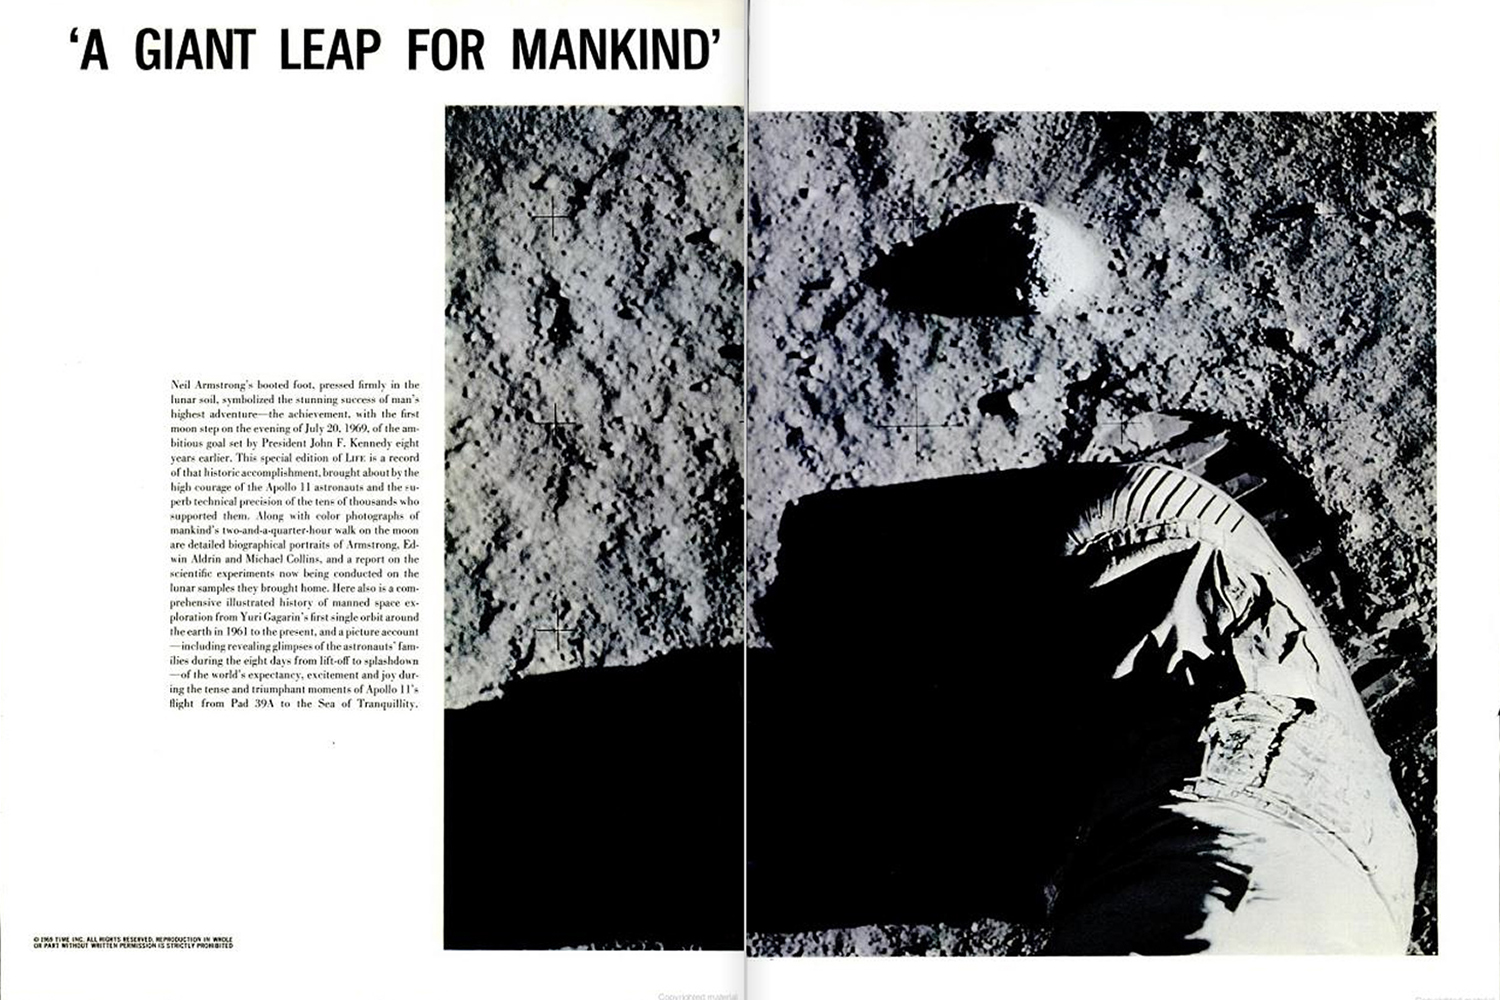 "<b>LIFE magazine Special Edition, August 11, 1969.</b> July 20, 1969: ""Neil Armstrong's booted foot pressed firmly in the lunar soil. . . ."""